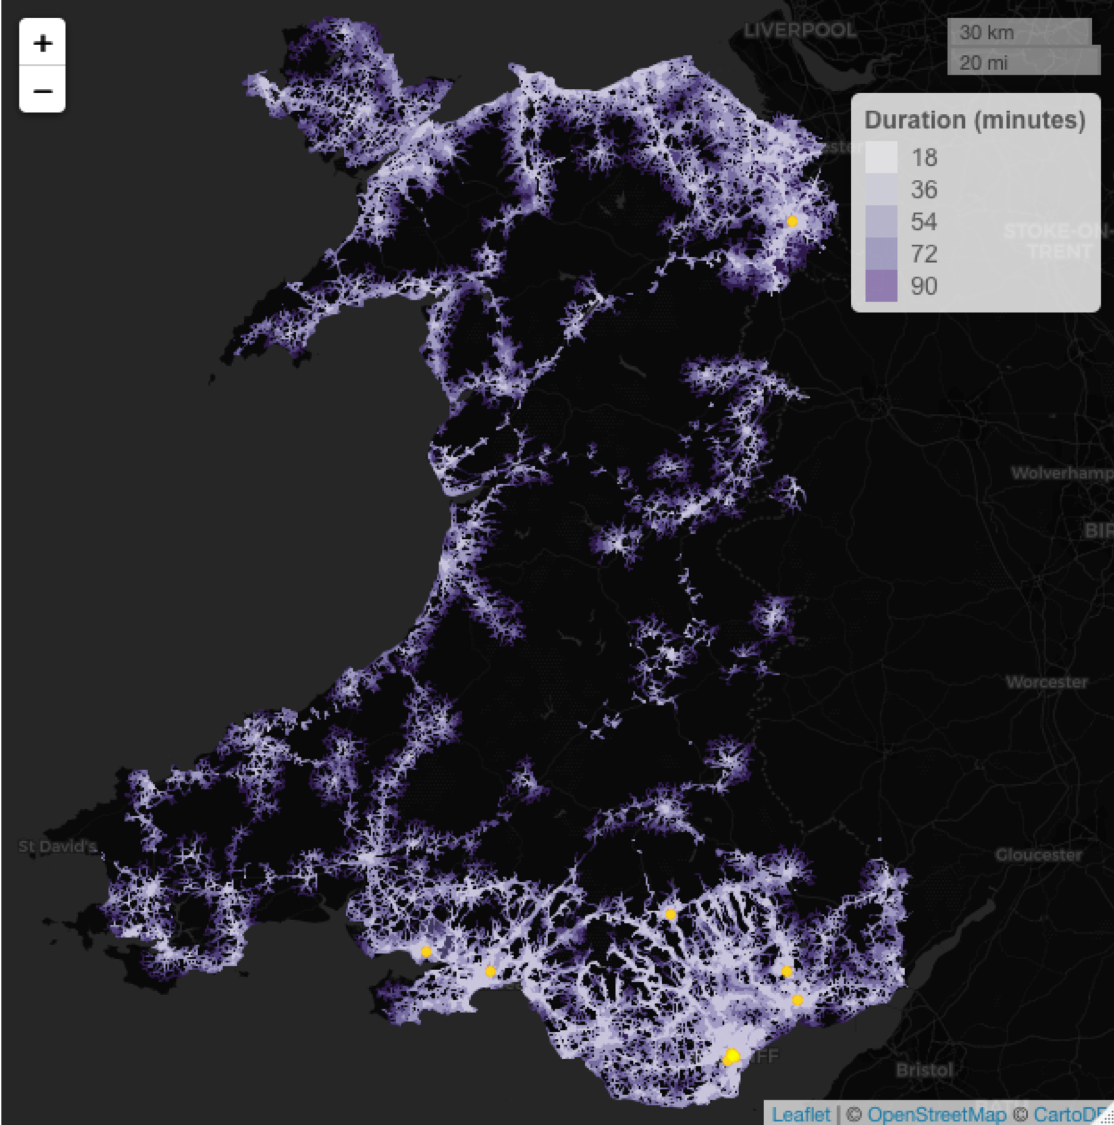 An isochrone map of Wales showing which areas of  the counry can access the ten sports venues with a capacity of greater than 10,000.